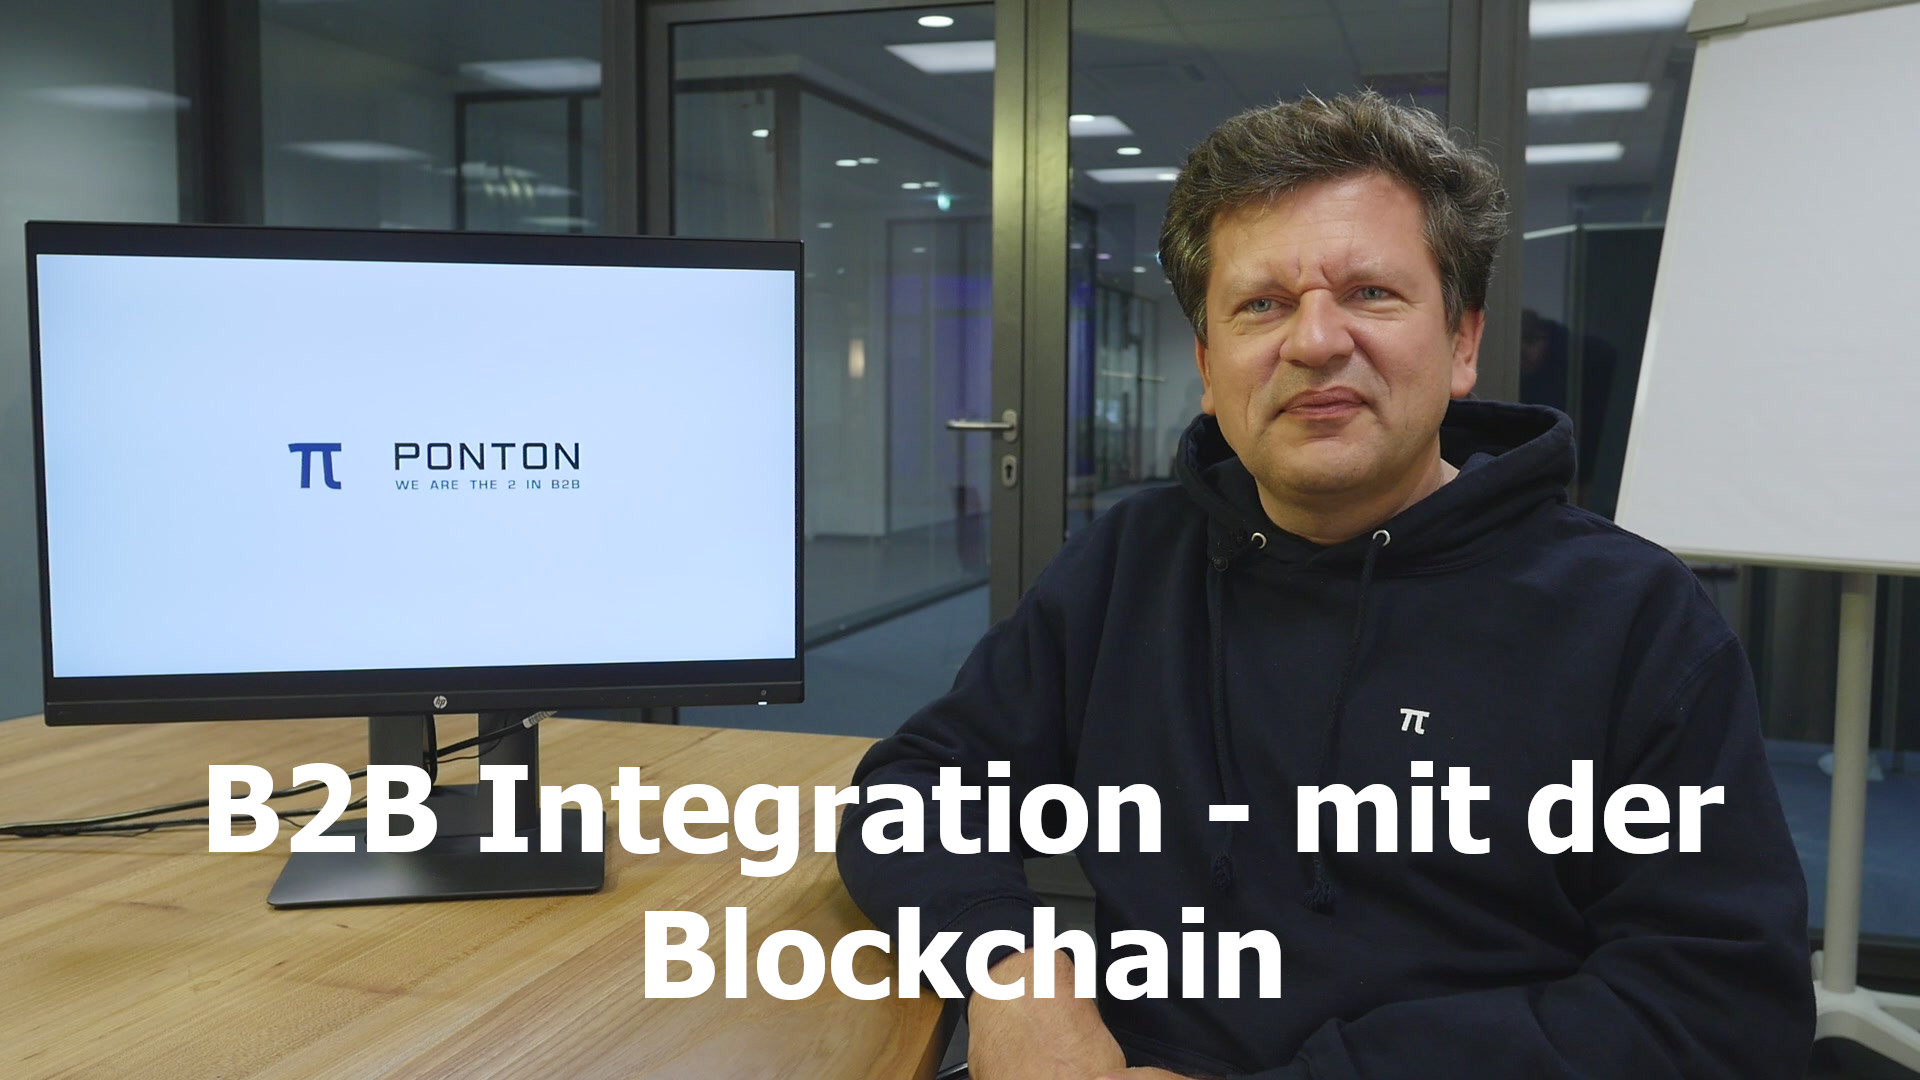 B2B Integration - mit der Blockchain